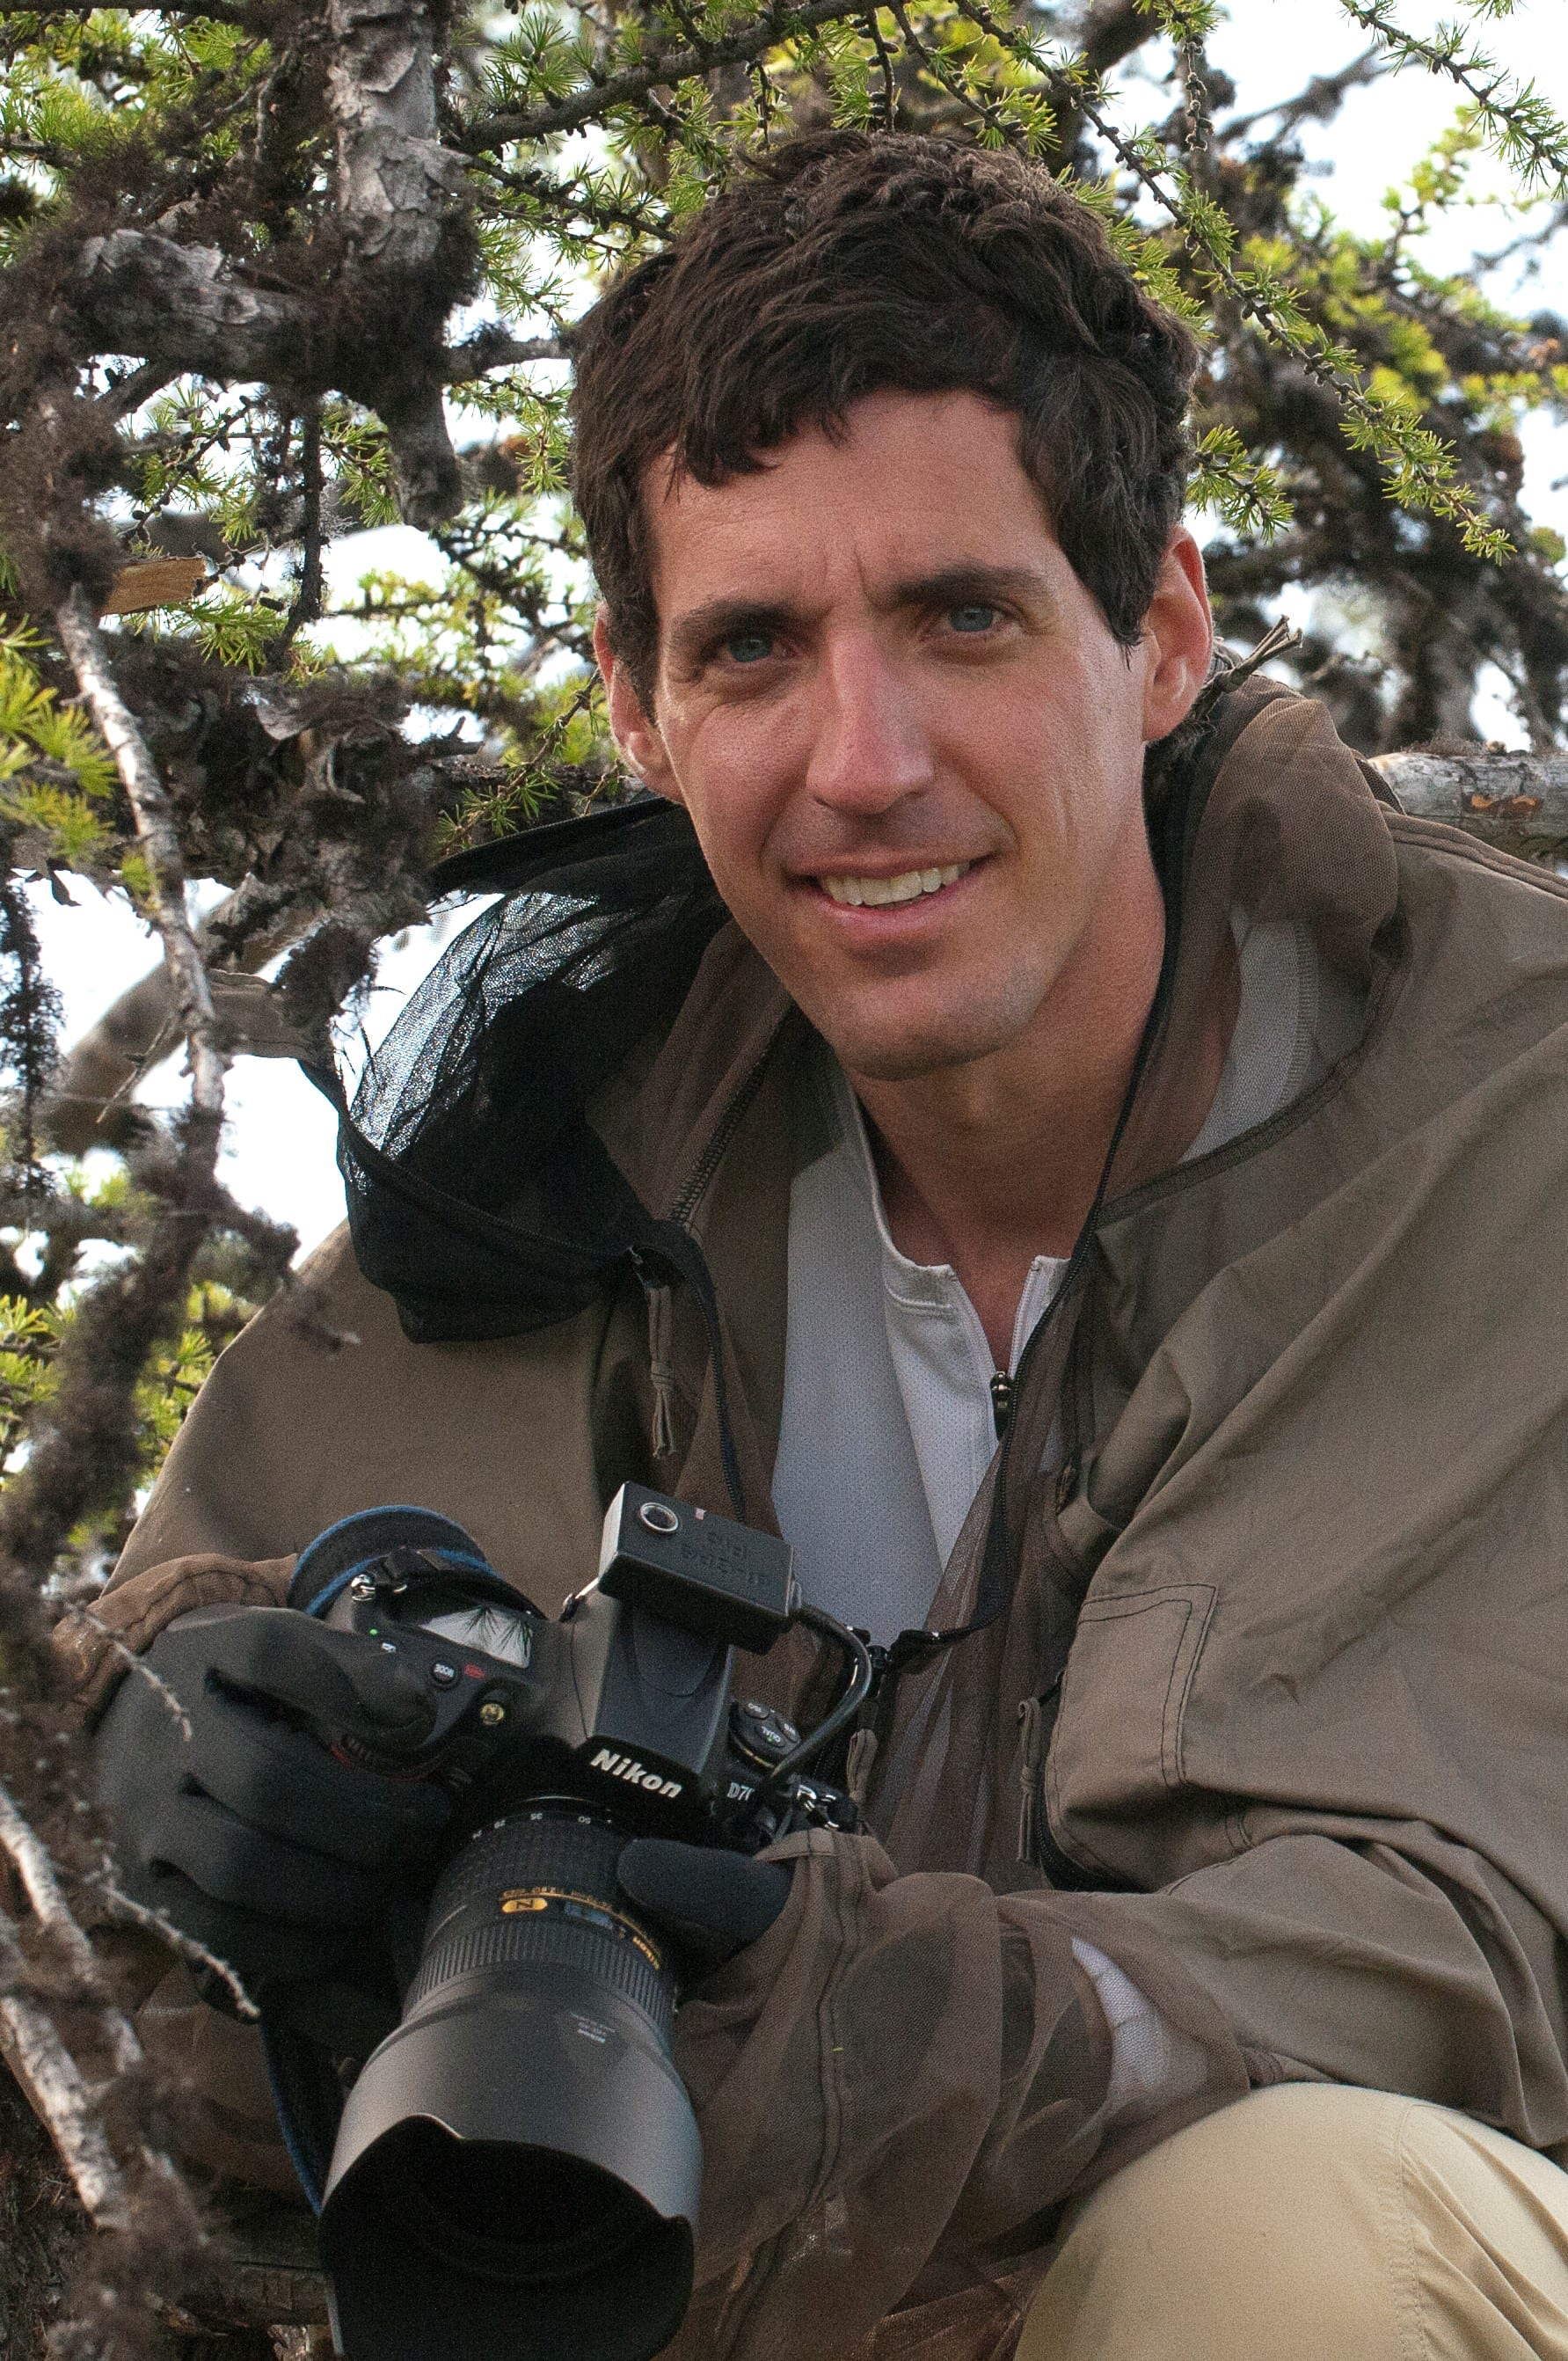 Chris Linder poses for a photo while on assignment in Siberia photographing for his latest book, The Big Thaw. (Photo by Brian Kantor, a student on the Polaris Project)